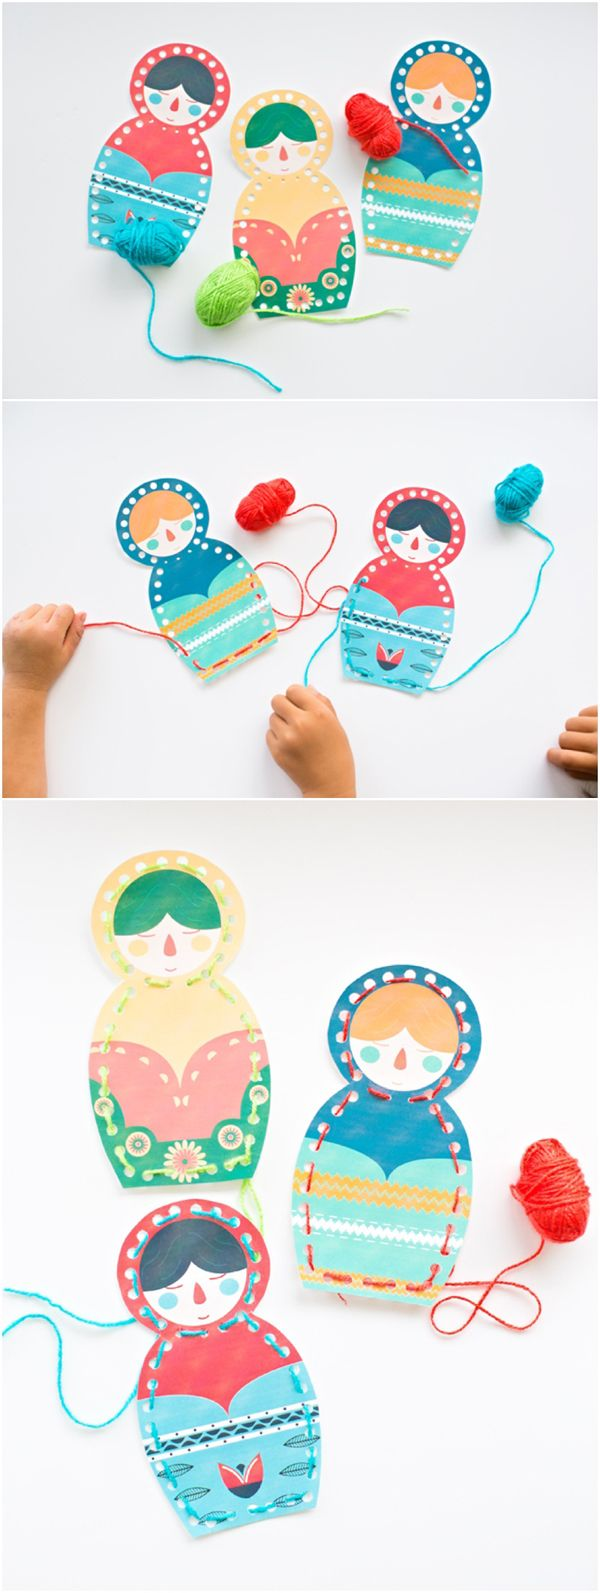 Free Printable Matryoshka Nesting Doll Lacing Cards for Kids. Such a cute threading and fine motor skills activity.